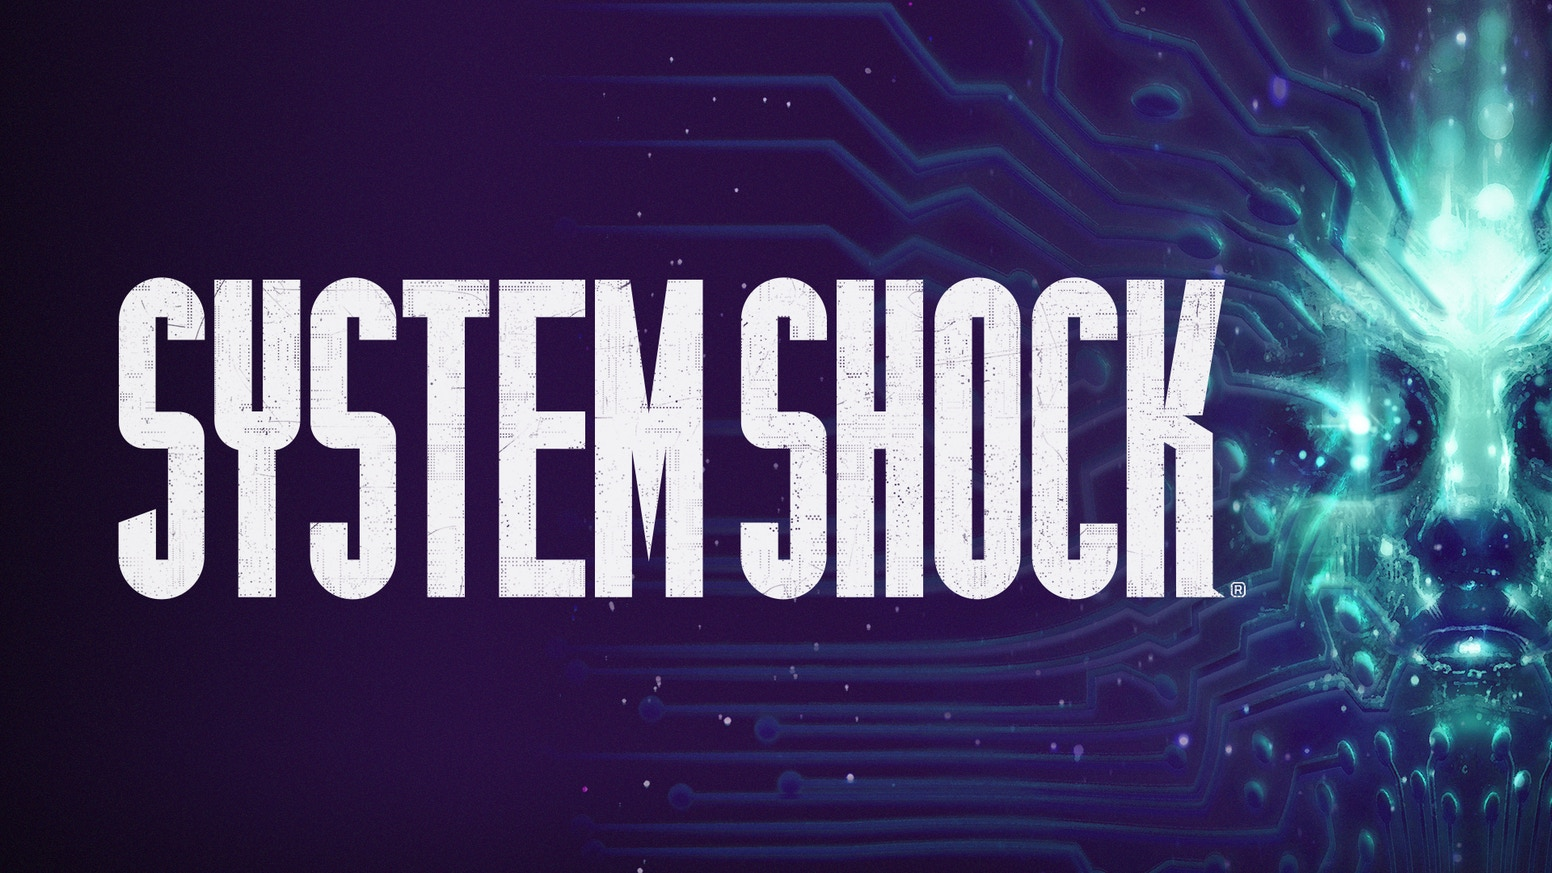 System Shock is a faithful reboot of the genre defining classic from 1994 built by a team of industry veterans.   Remember Citadel.